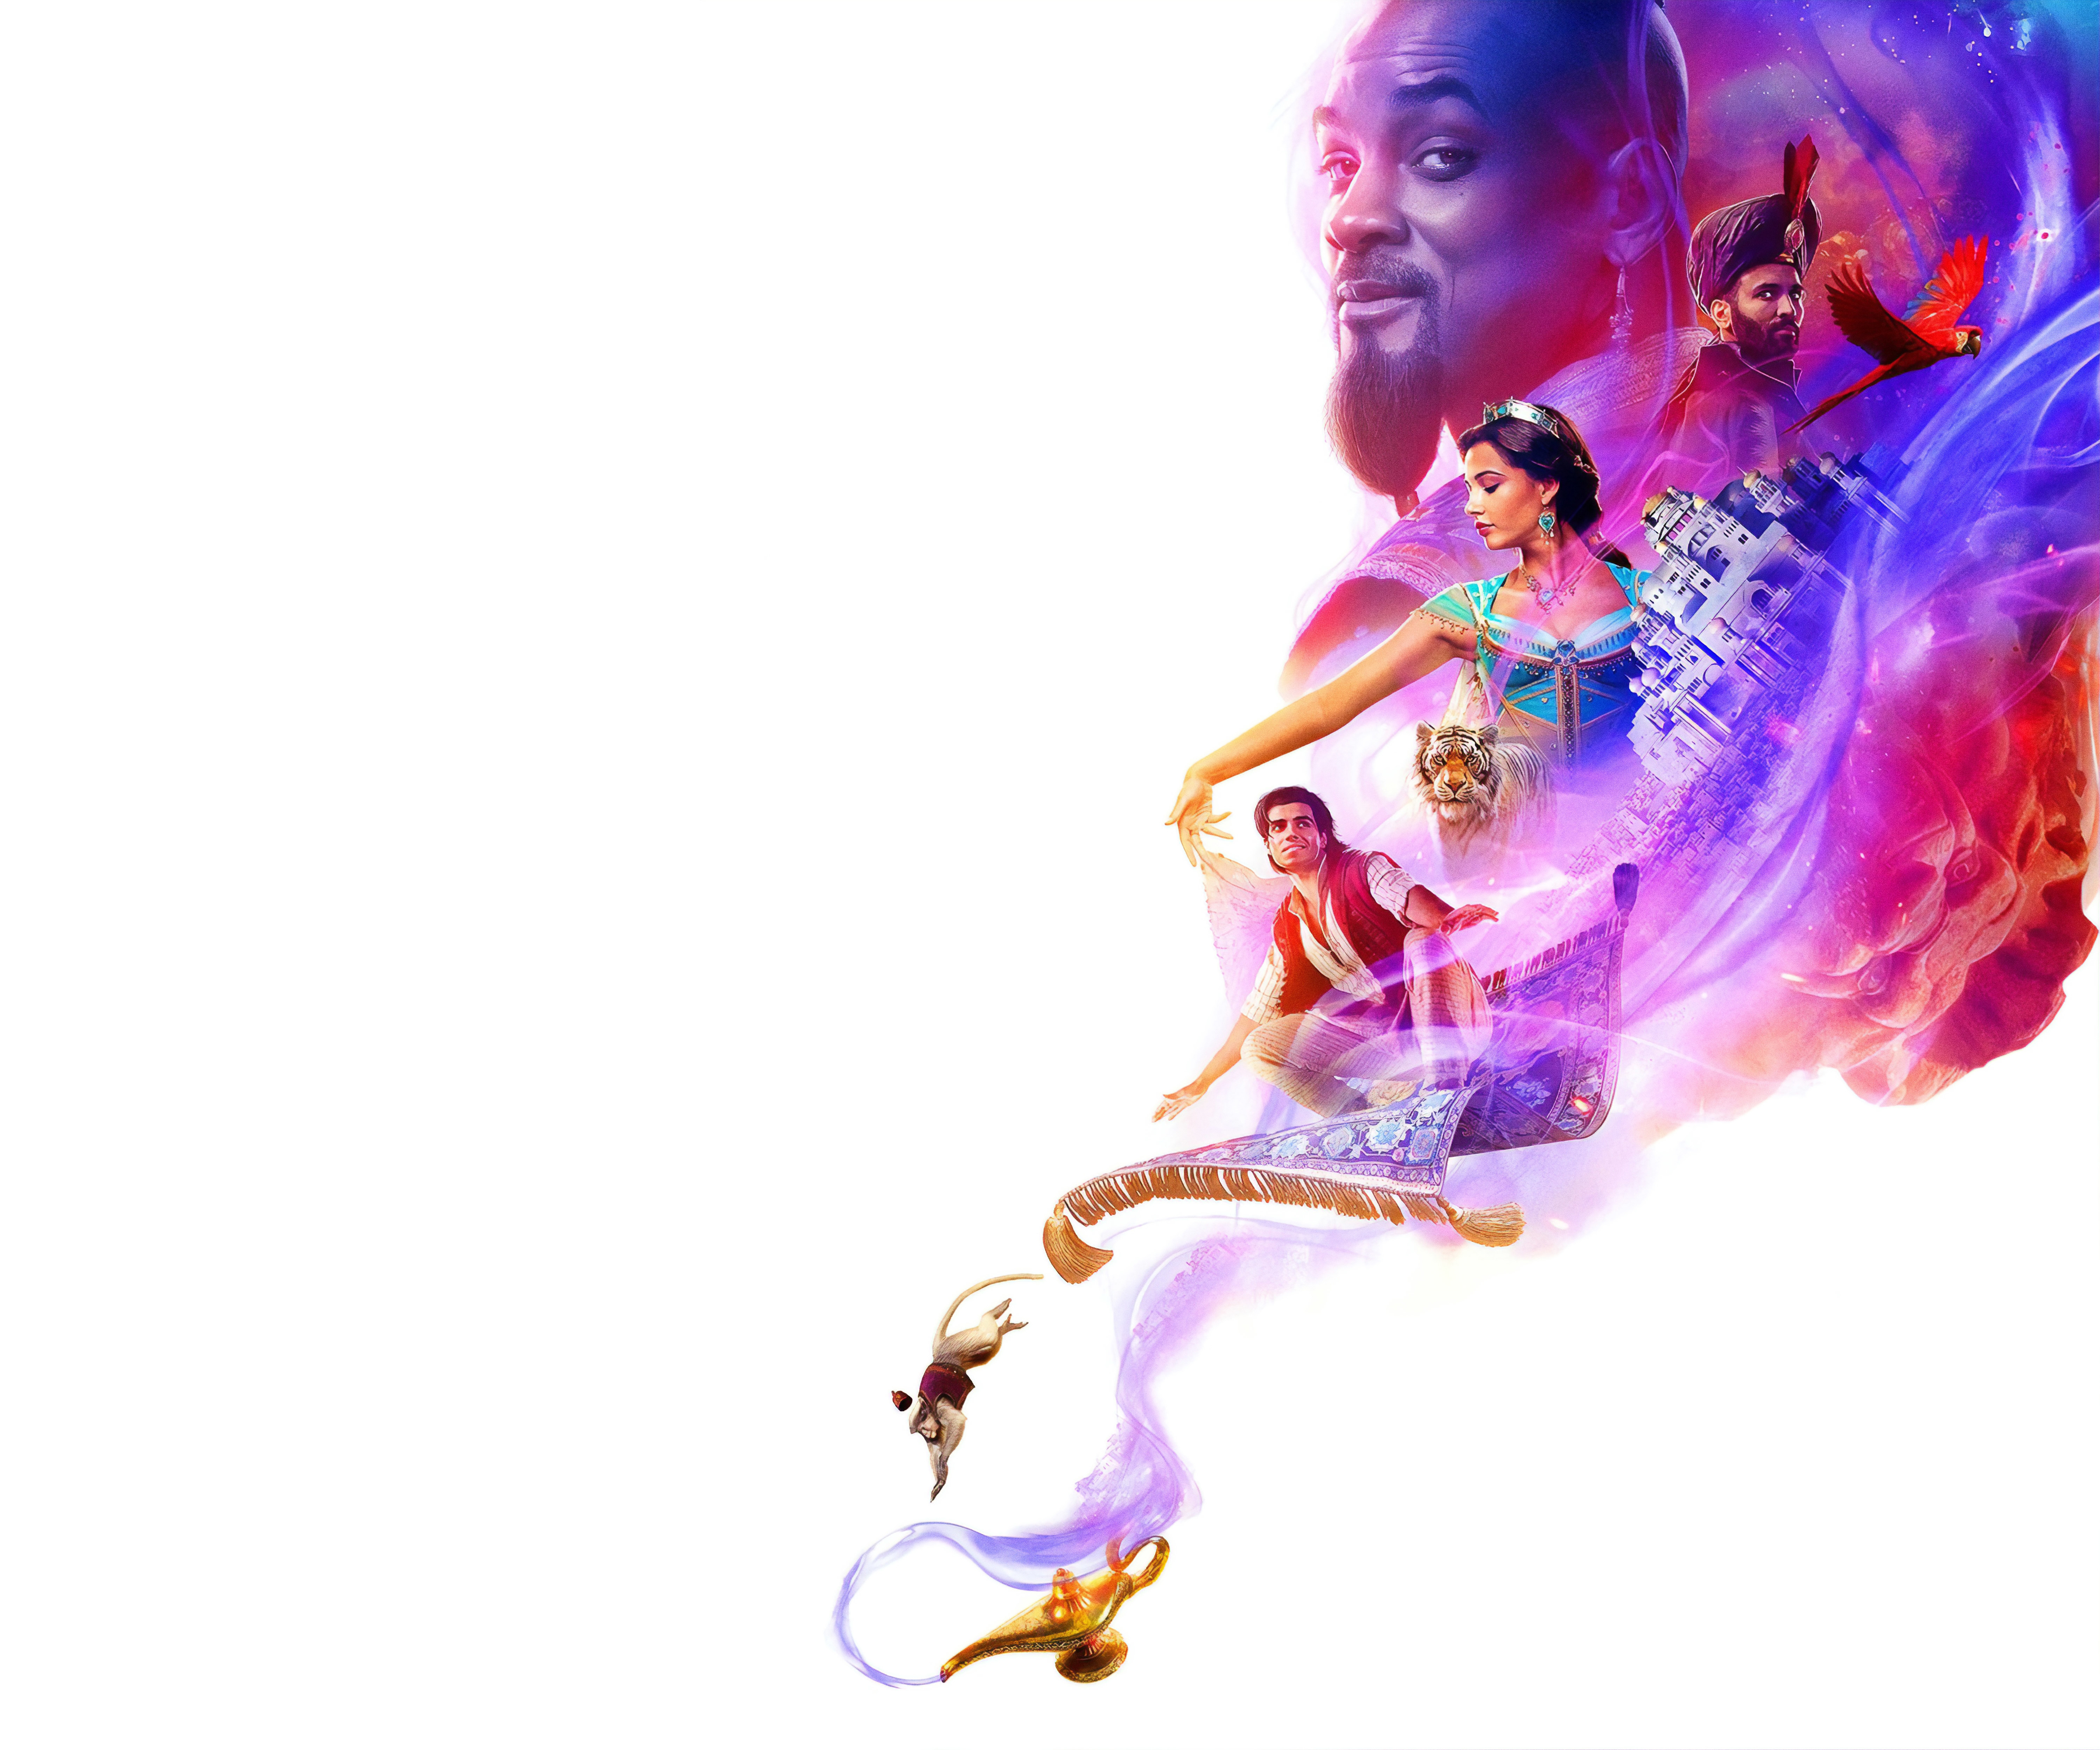 Movie Poster 2019: Disney Aladdin 2019 4K Wallpaper, HD Movies 4K Wallpapers